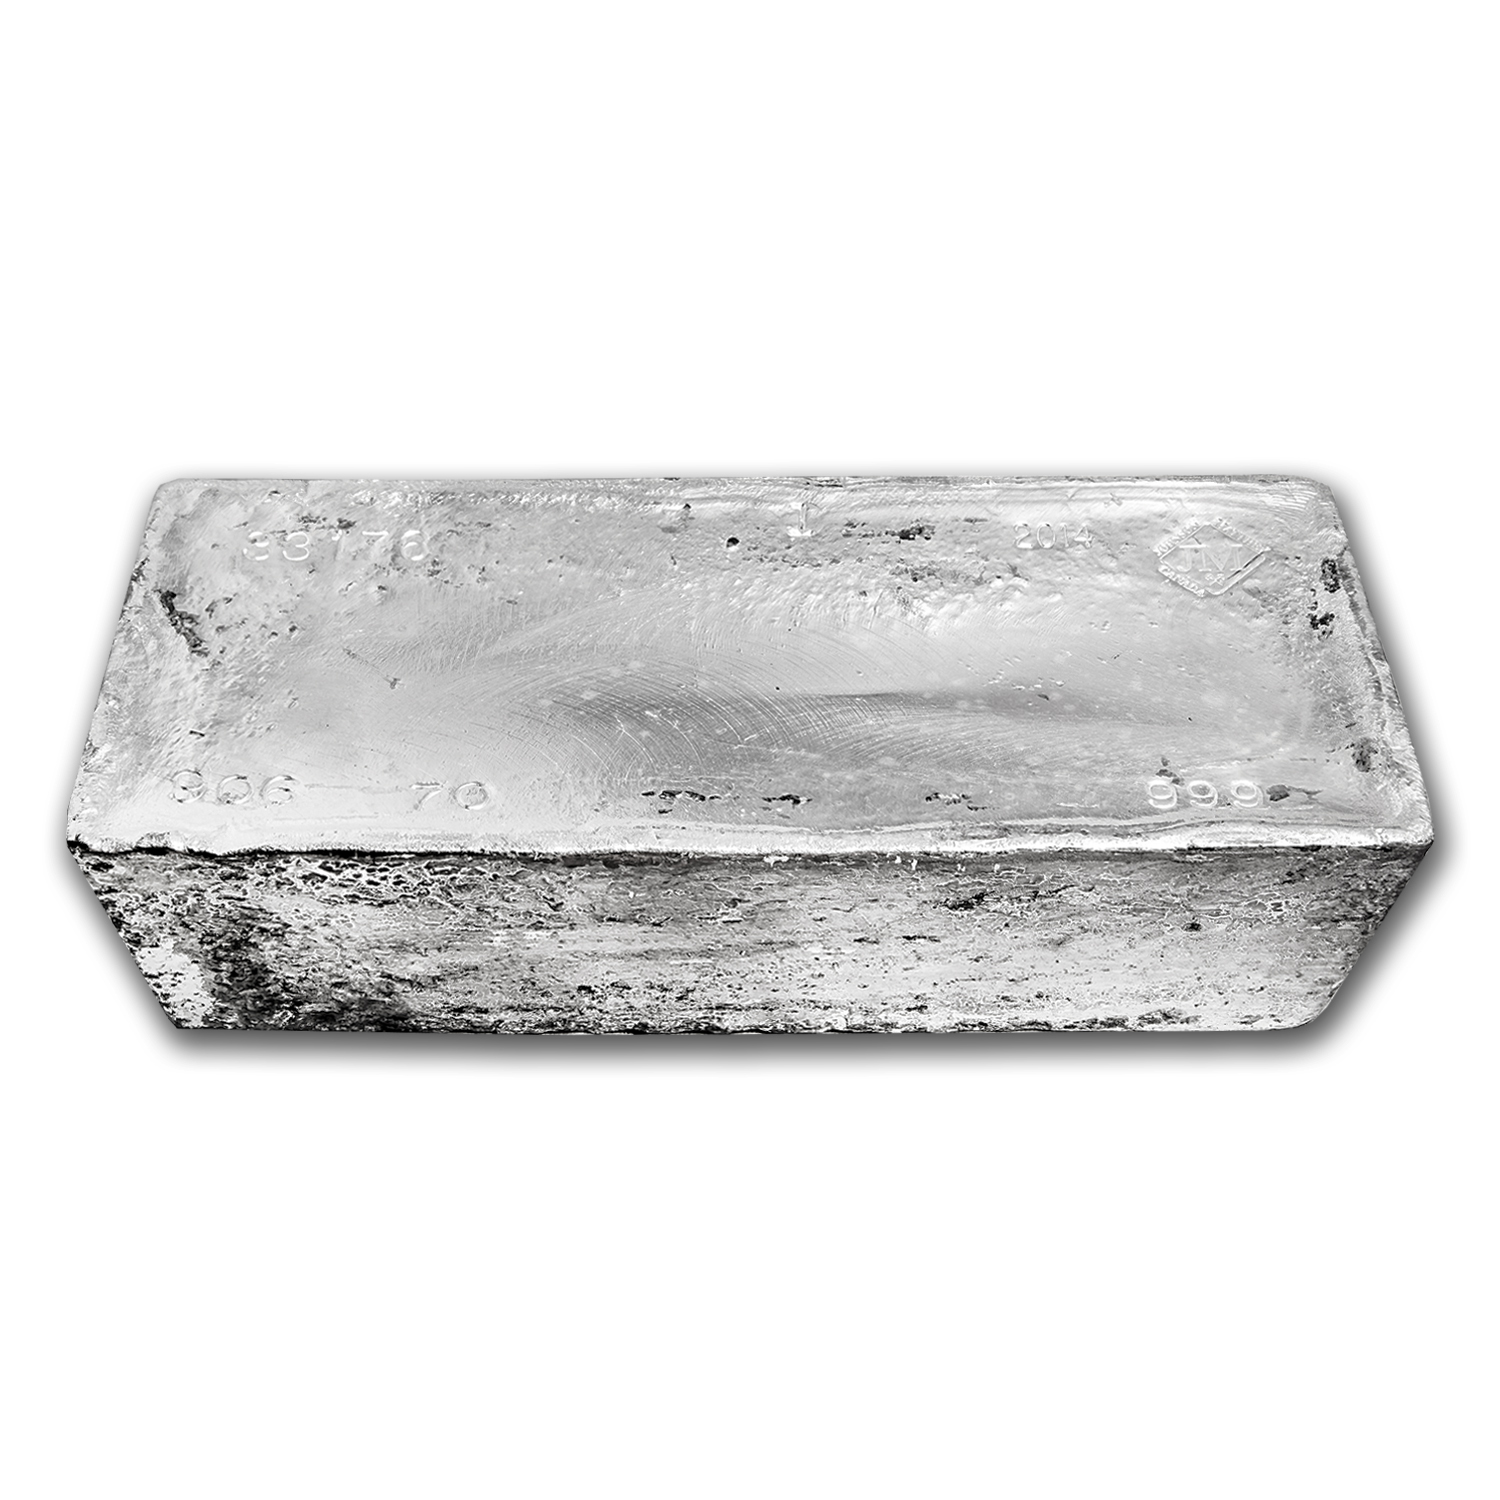 956.50 oz Silver Bars - Johnson Matthey